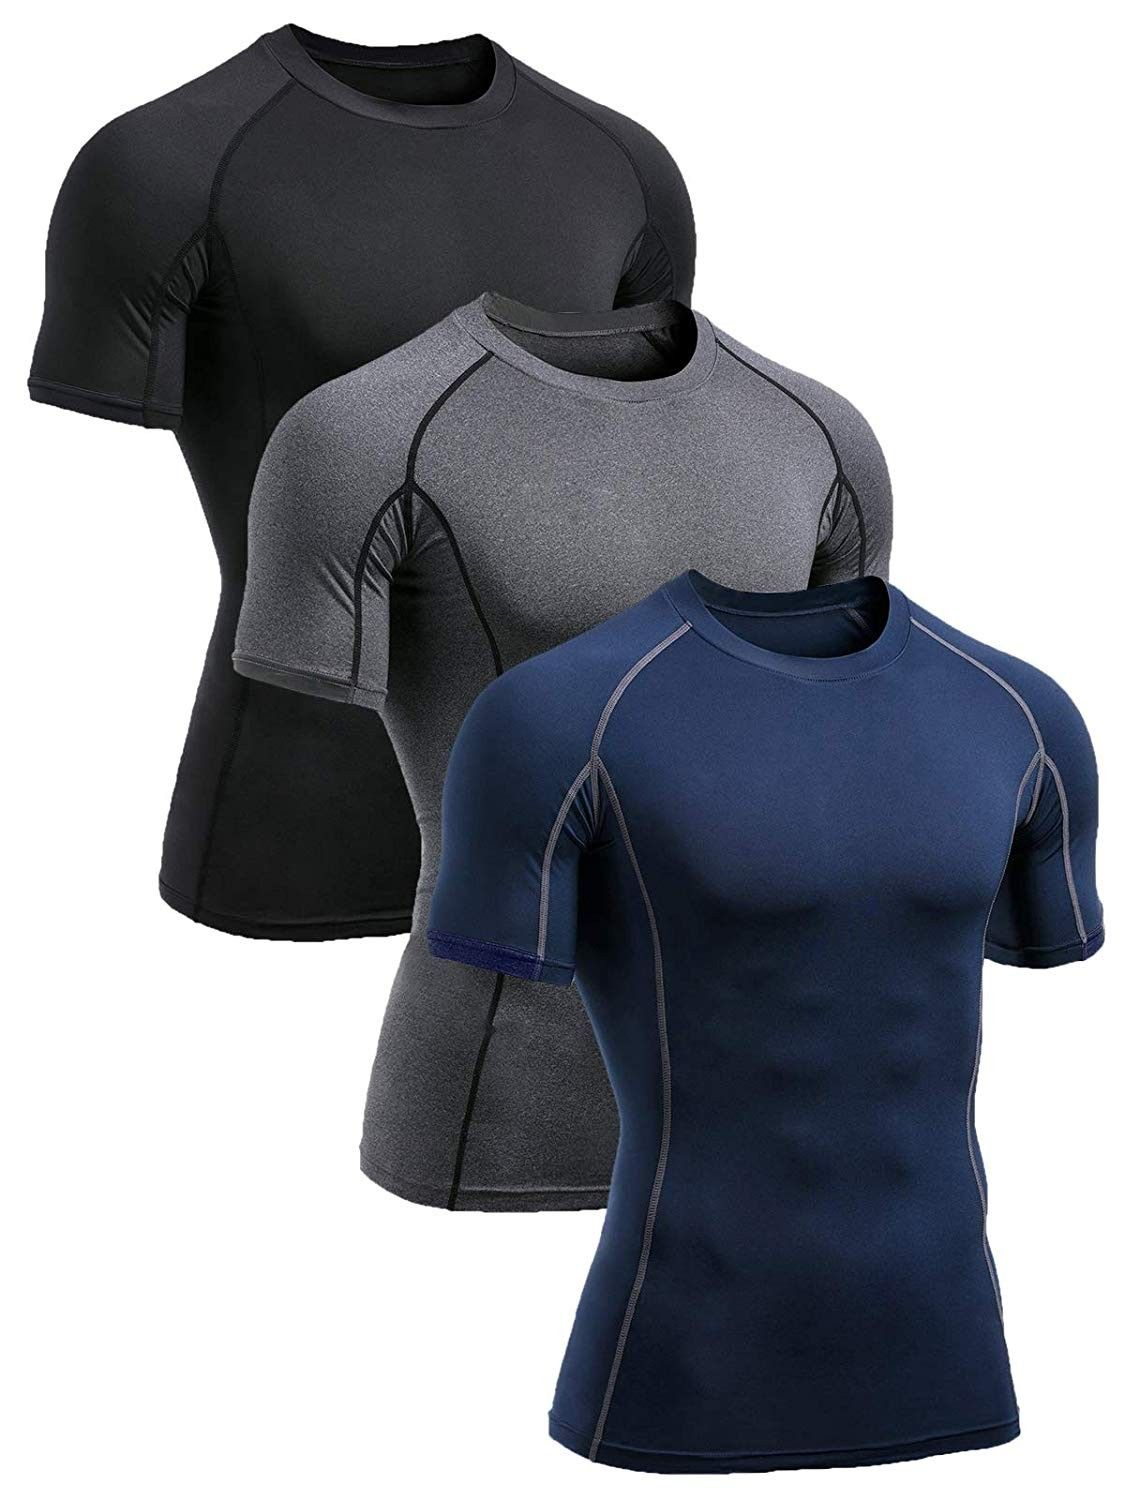 Men's 3 Pack Athletic Compression Baselayer Cool Dry